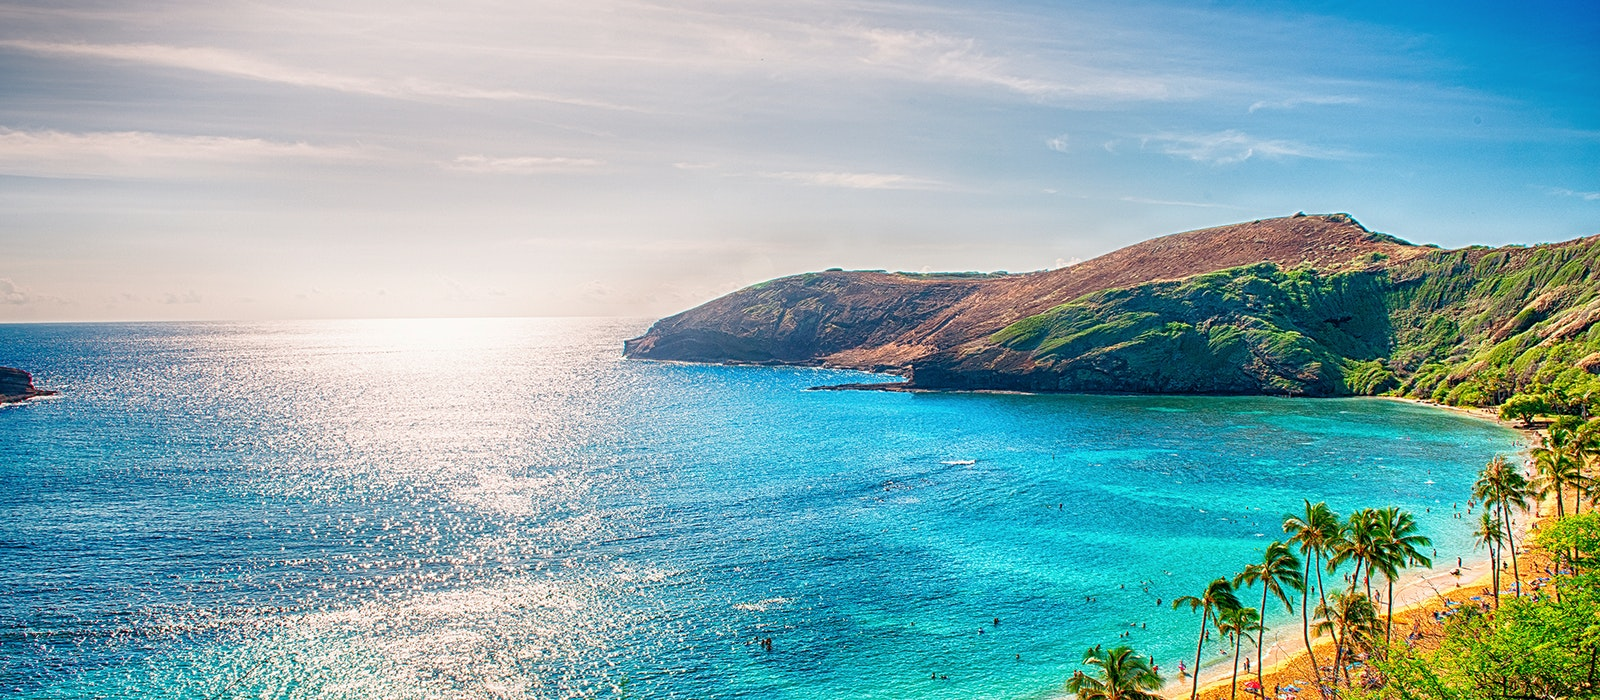 There are plenty of reasons to go to Hawaii this year.